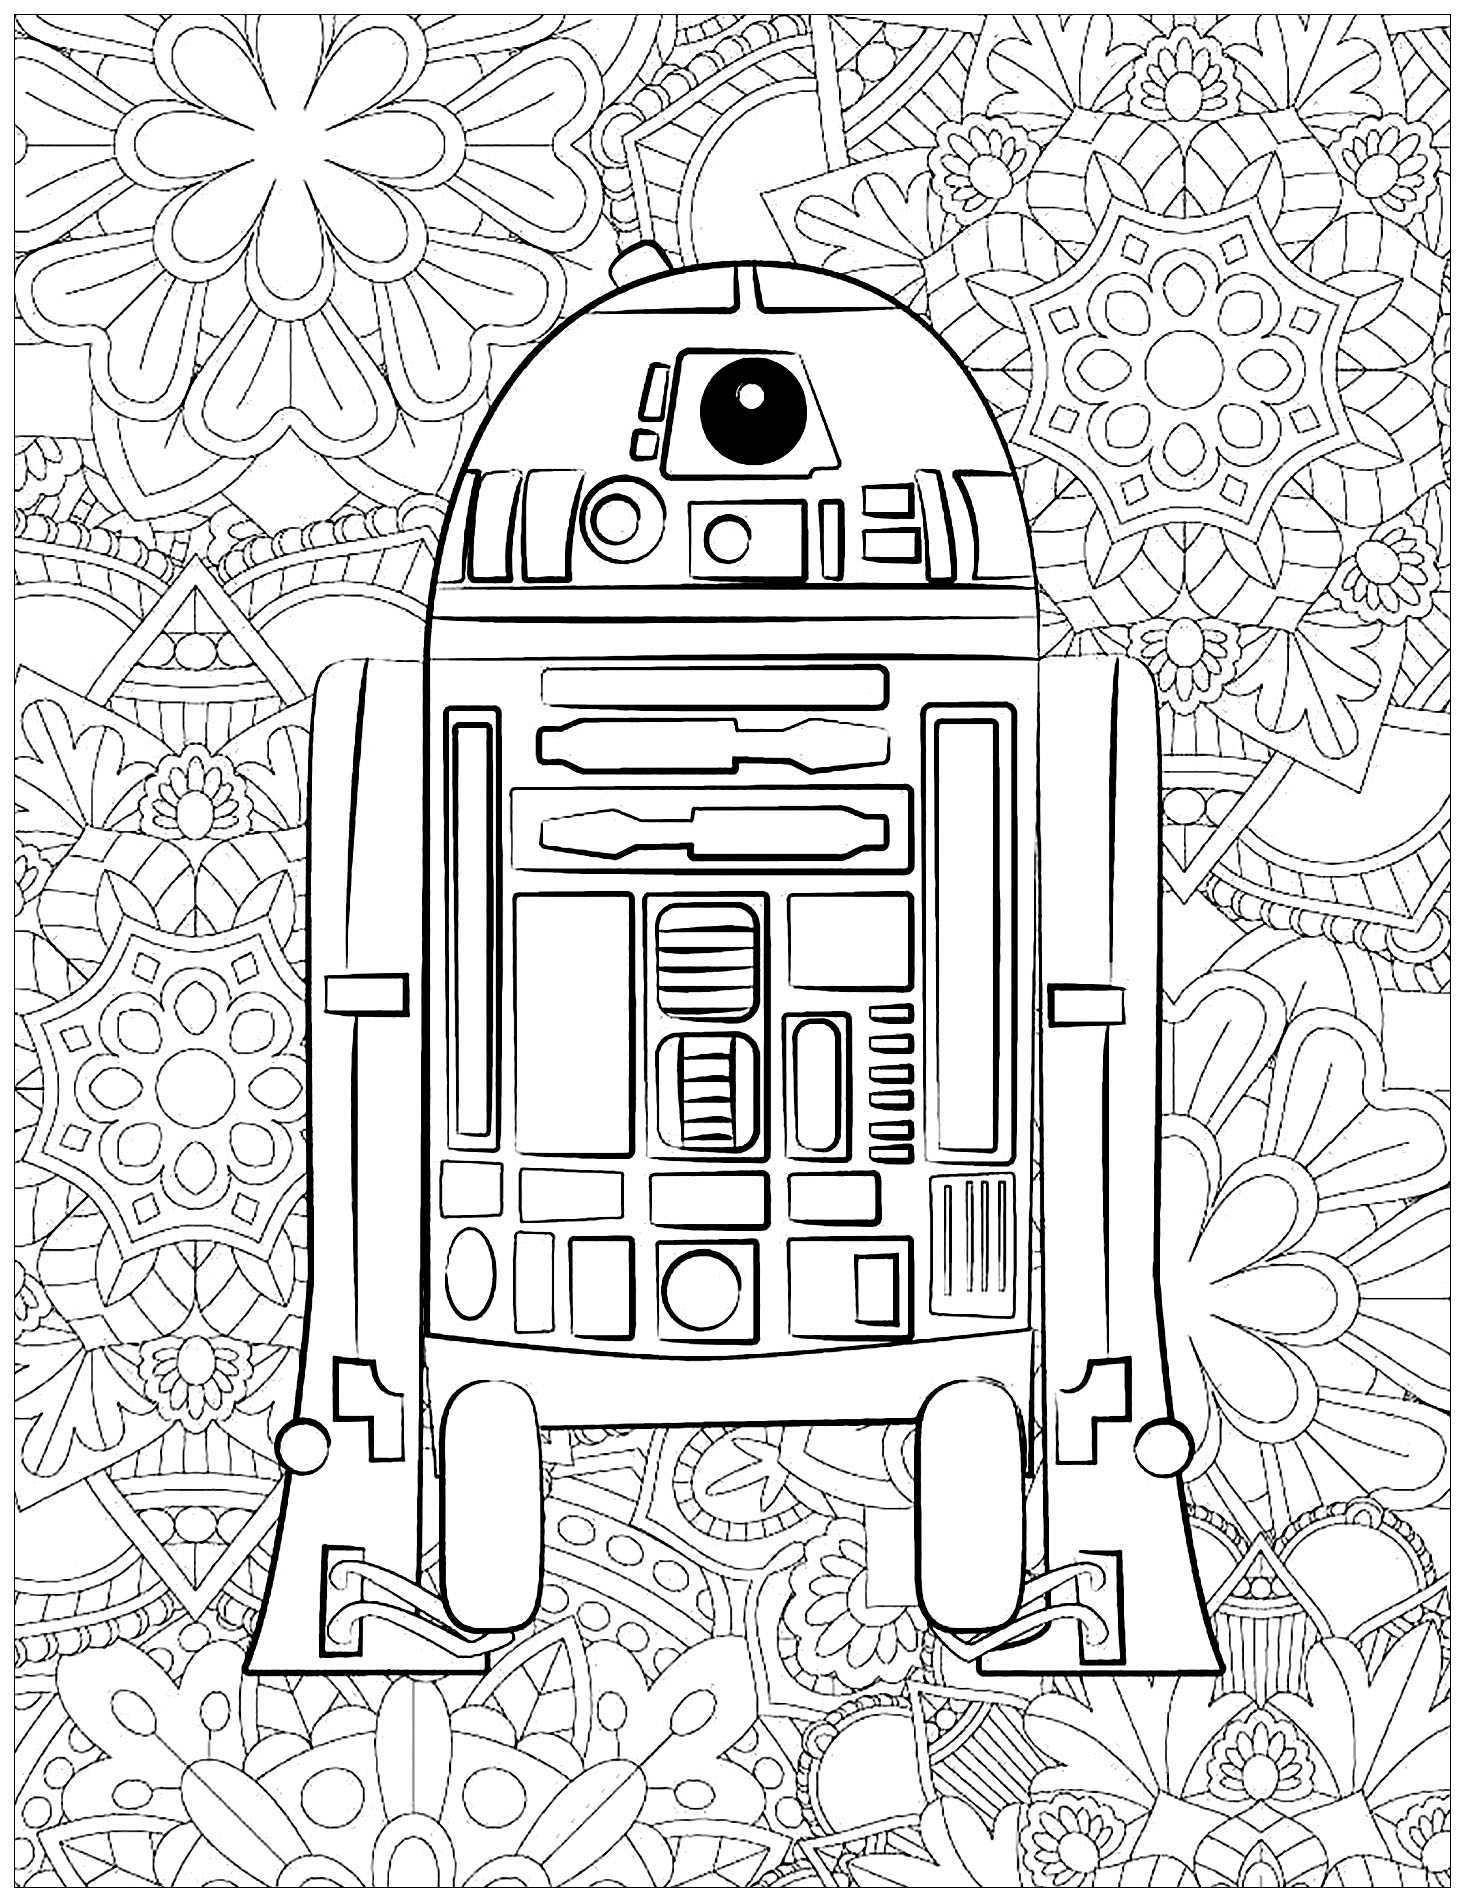 star wars pictures to print and color star wars printable coloring pages hubpages color and to wars pictures print star